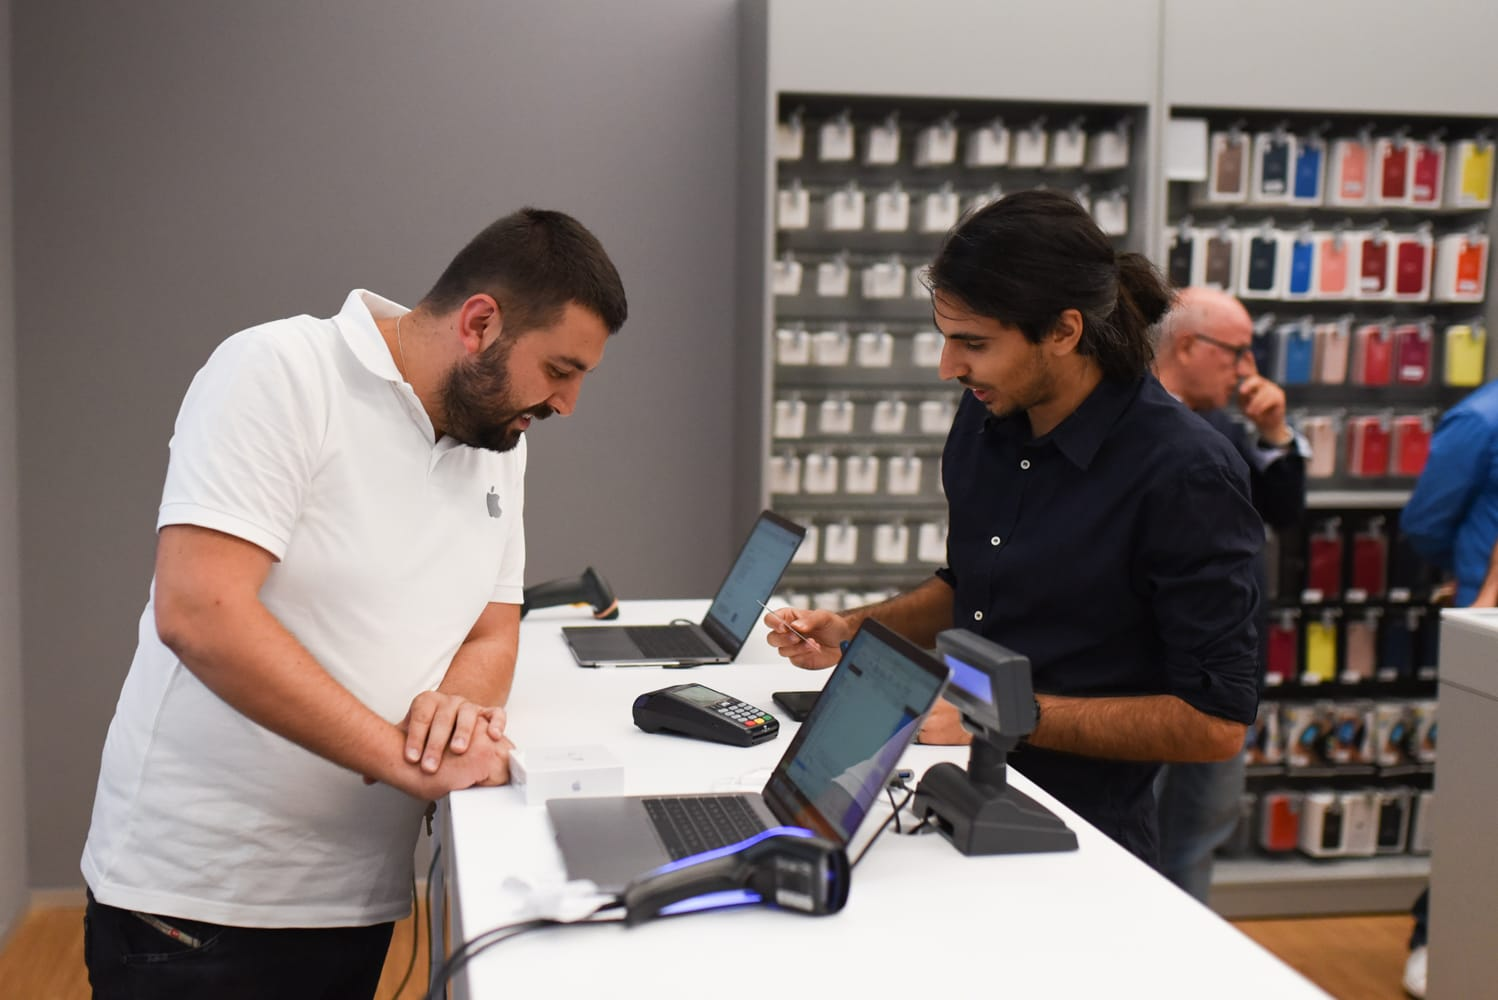 Cliente paga con Apple Pay